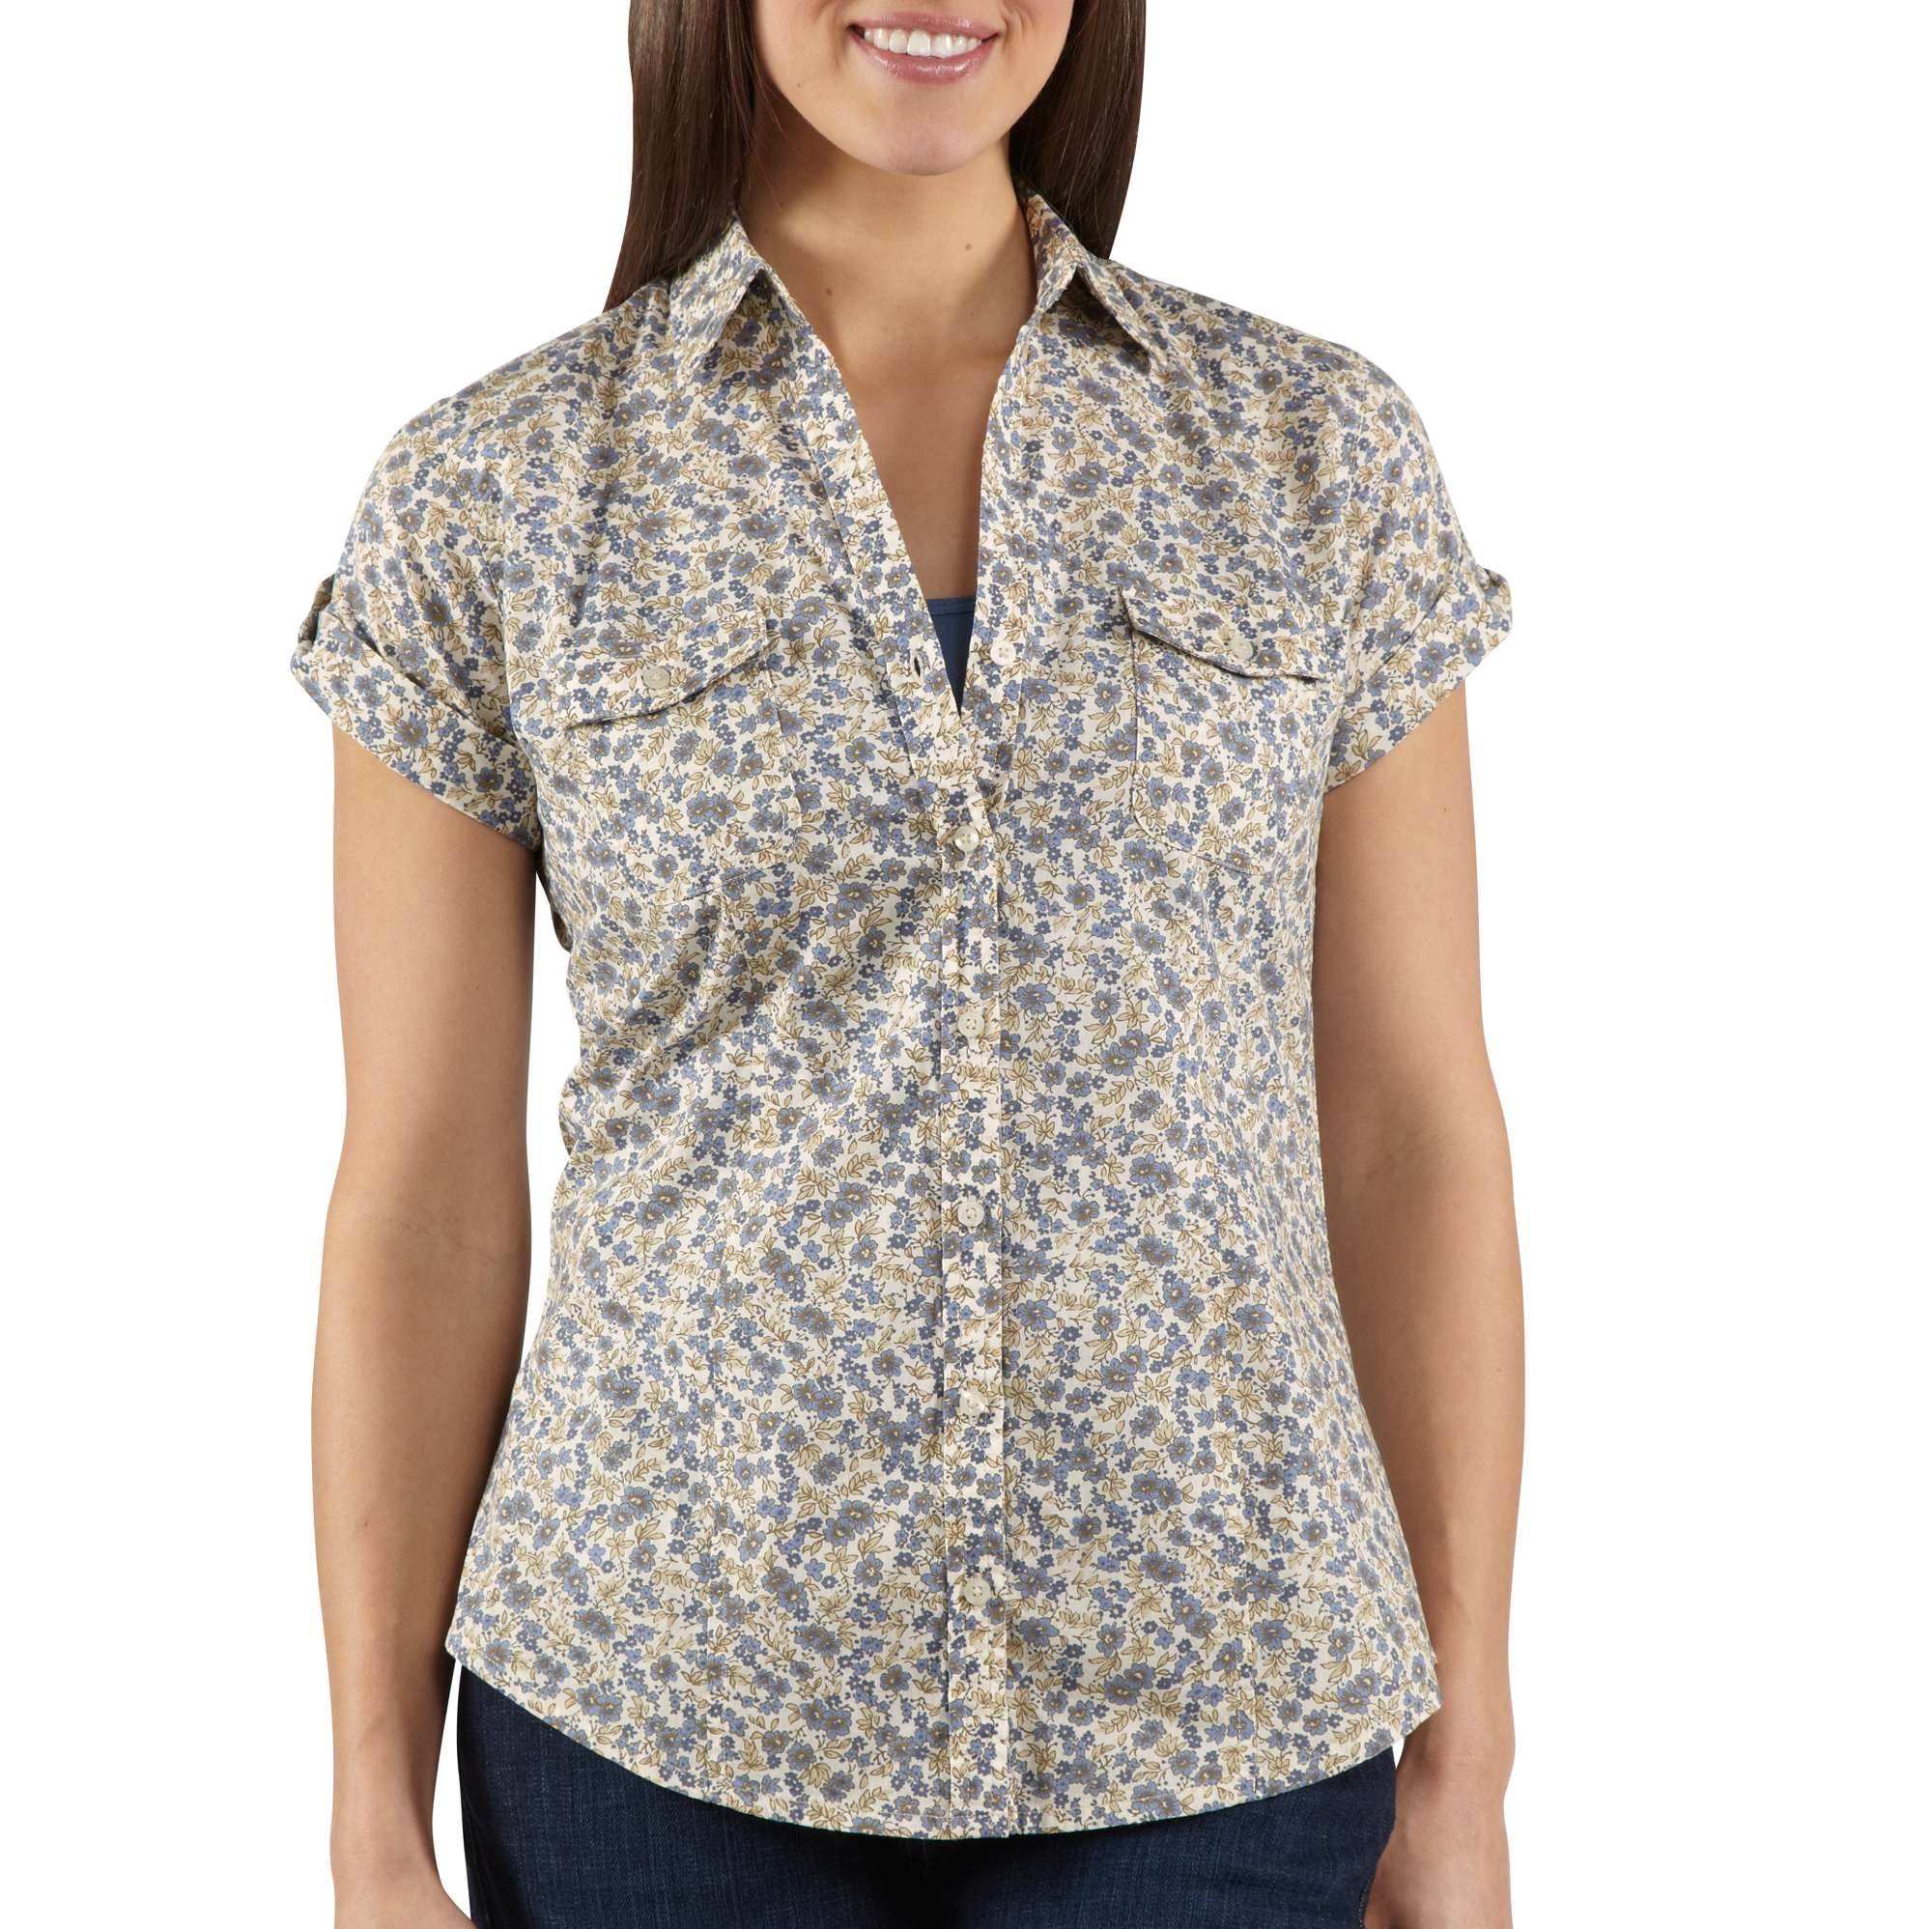 Carhartt womens short sleeve printed camp shirt ws036 ebay for Women s long sleeve camp shirts